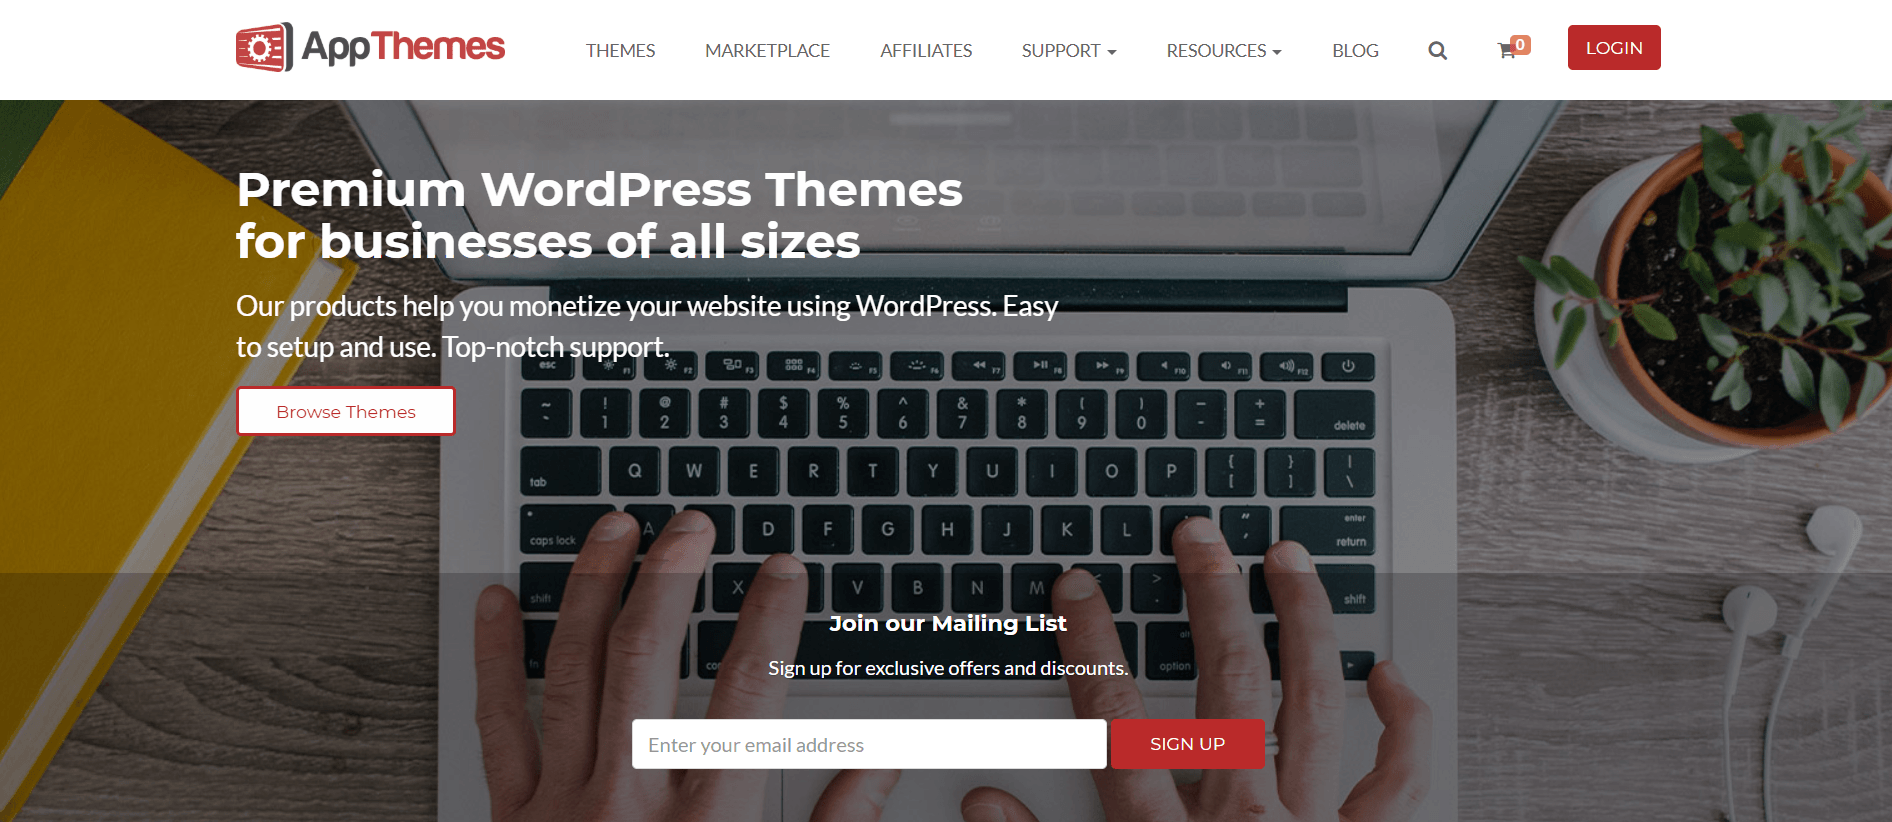 This screenshot of the home page for App Themes has a white navigation bar above an overhead photo of a laptop with hands on the keyboard, behind white lettering announcing premium WordPress themes.